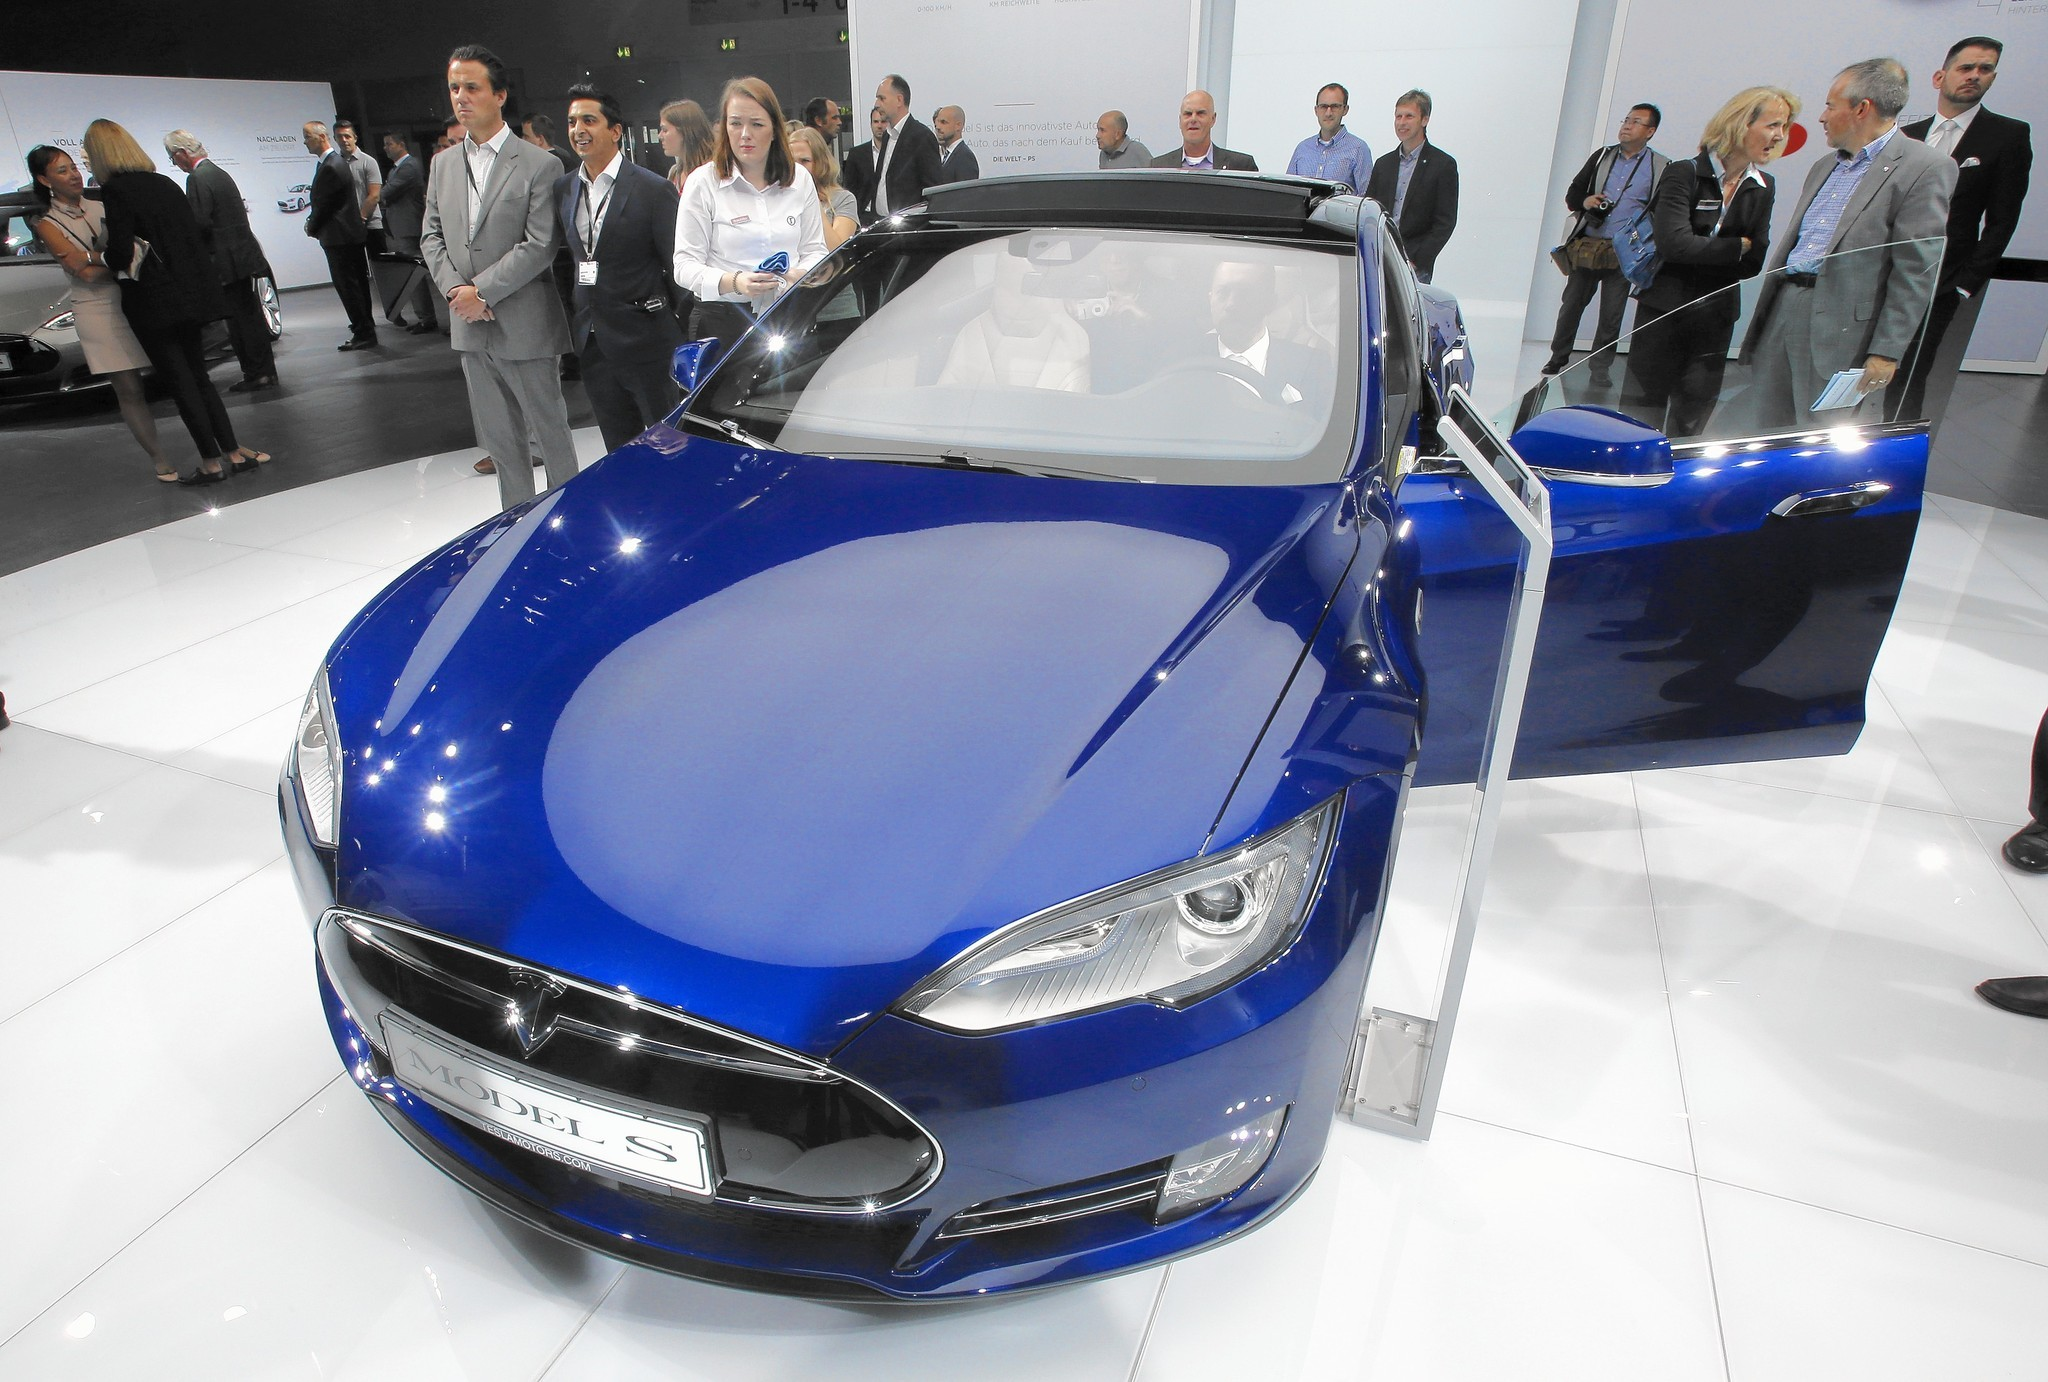 1432fee05e Driverless cars could improve safety